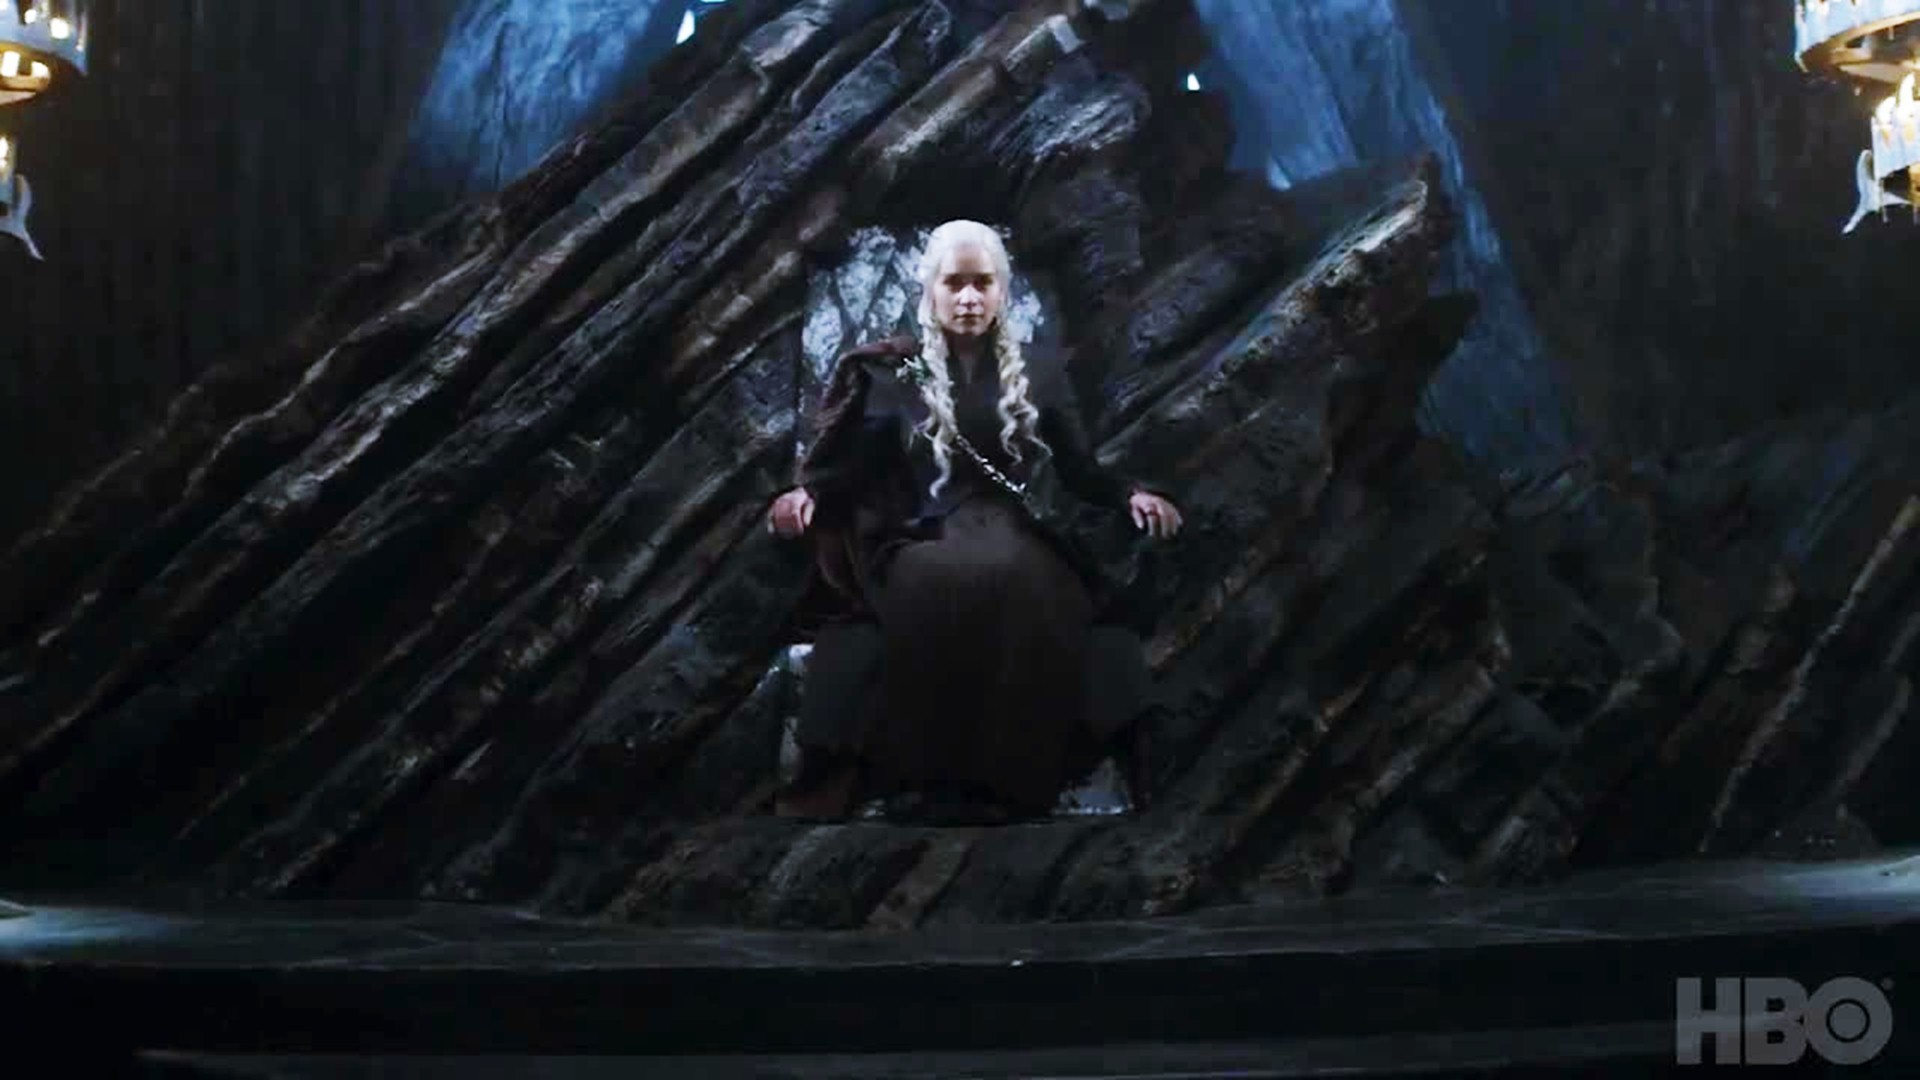 Game Of Thrones Daenerys Wallpaper 73 Images